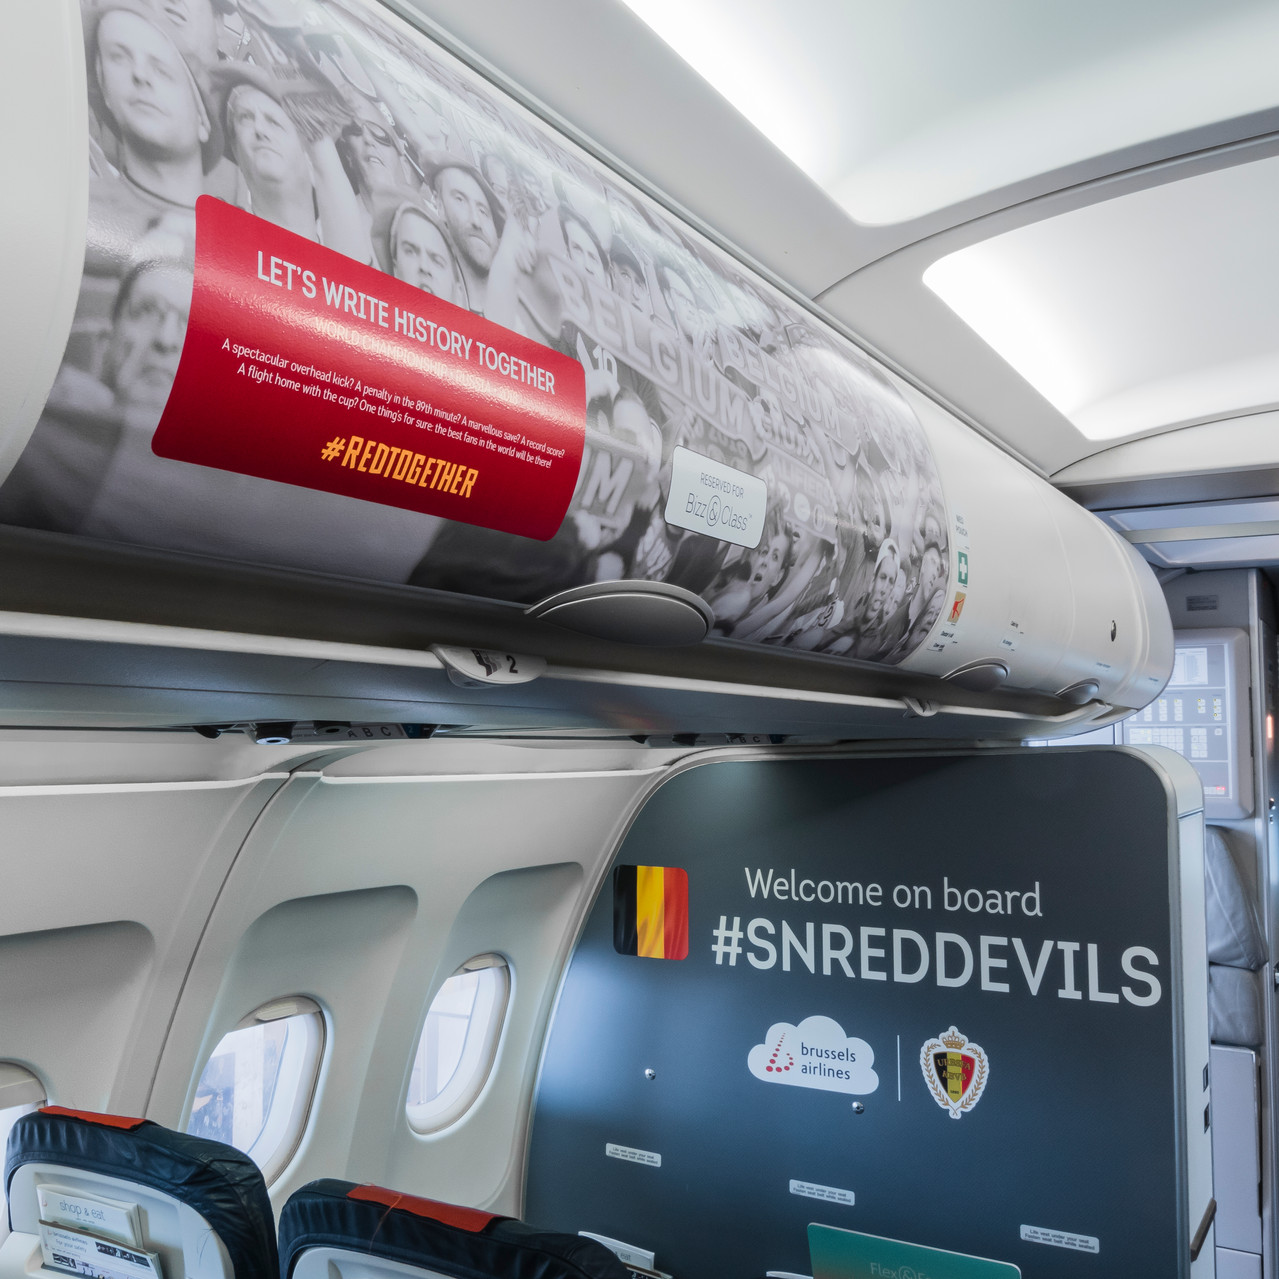 004_Brussels Airlines